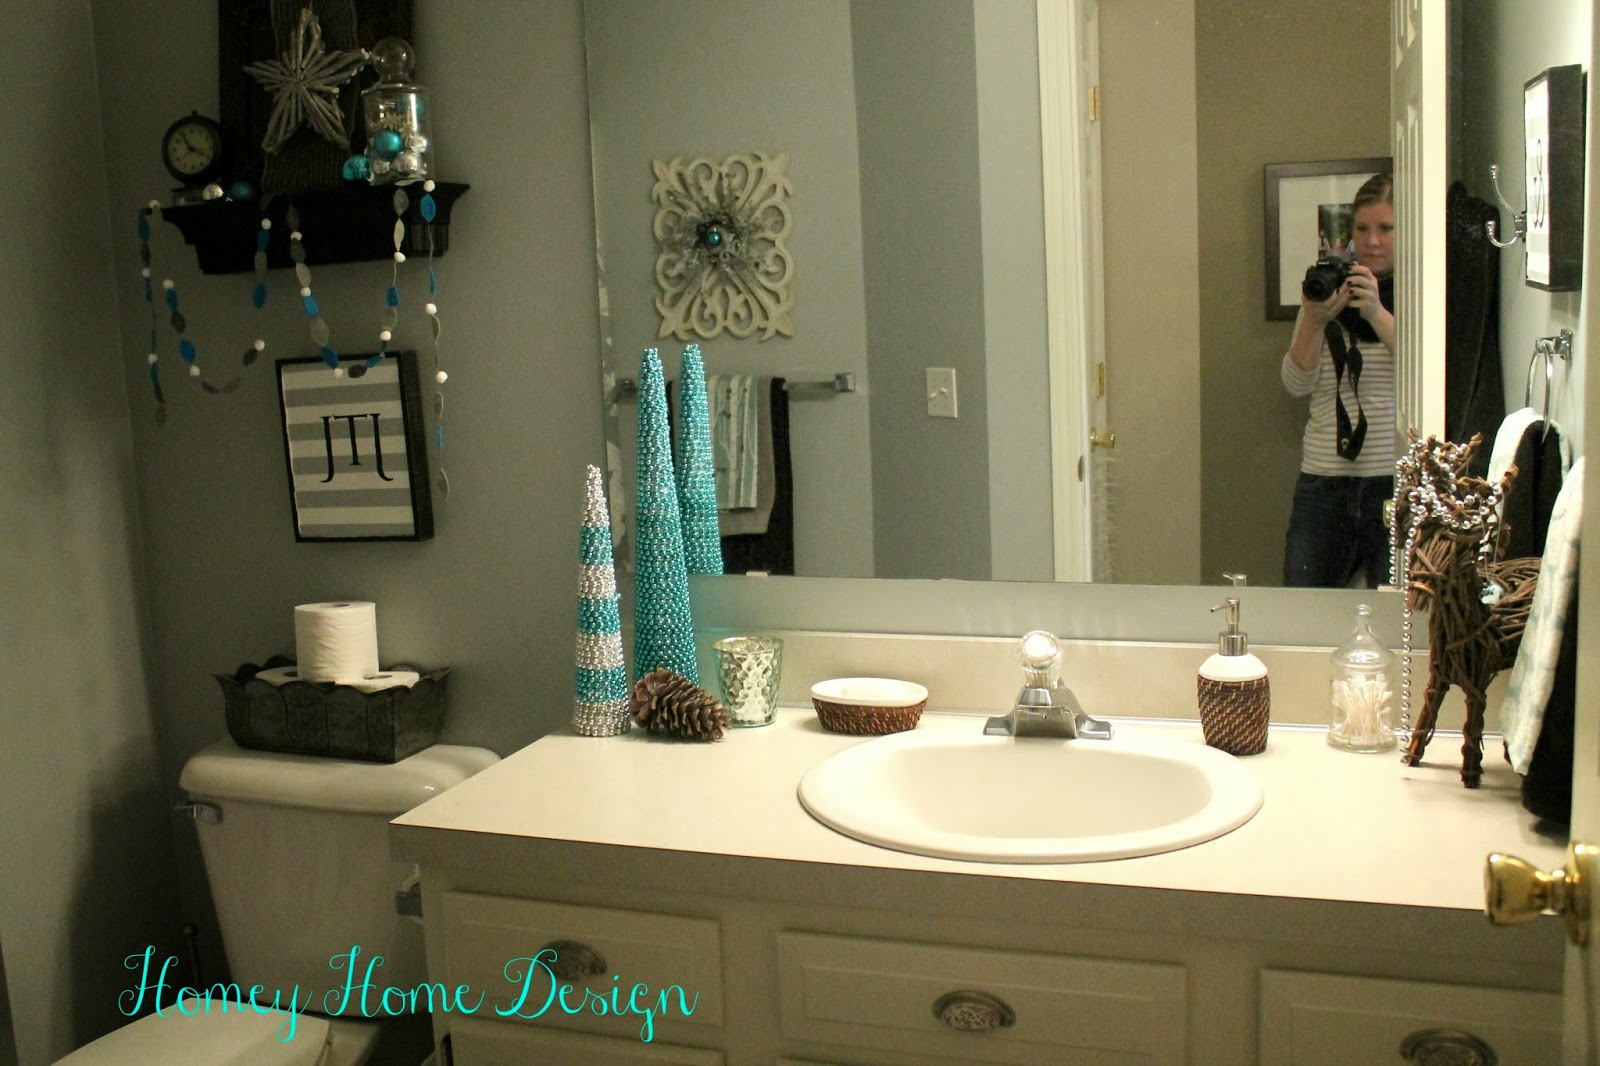 Homey home design bathroom christmas ideas for Bathroom decor design ideas